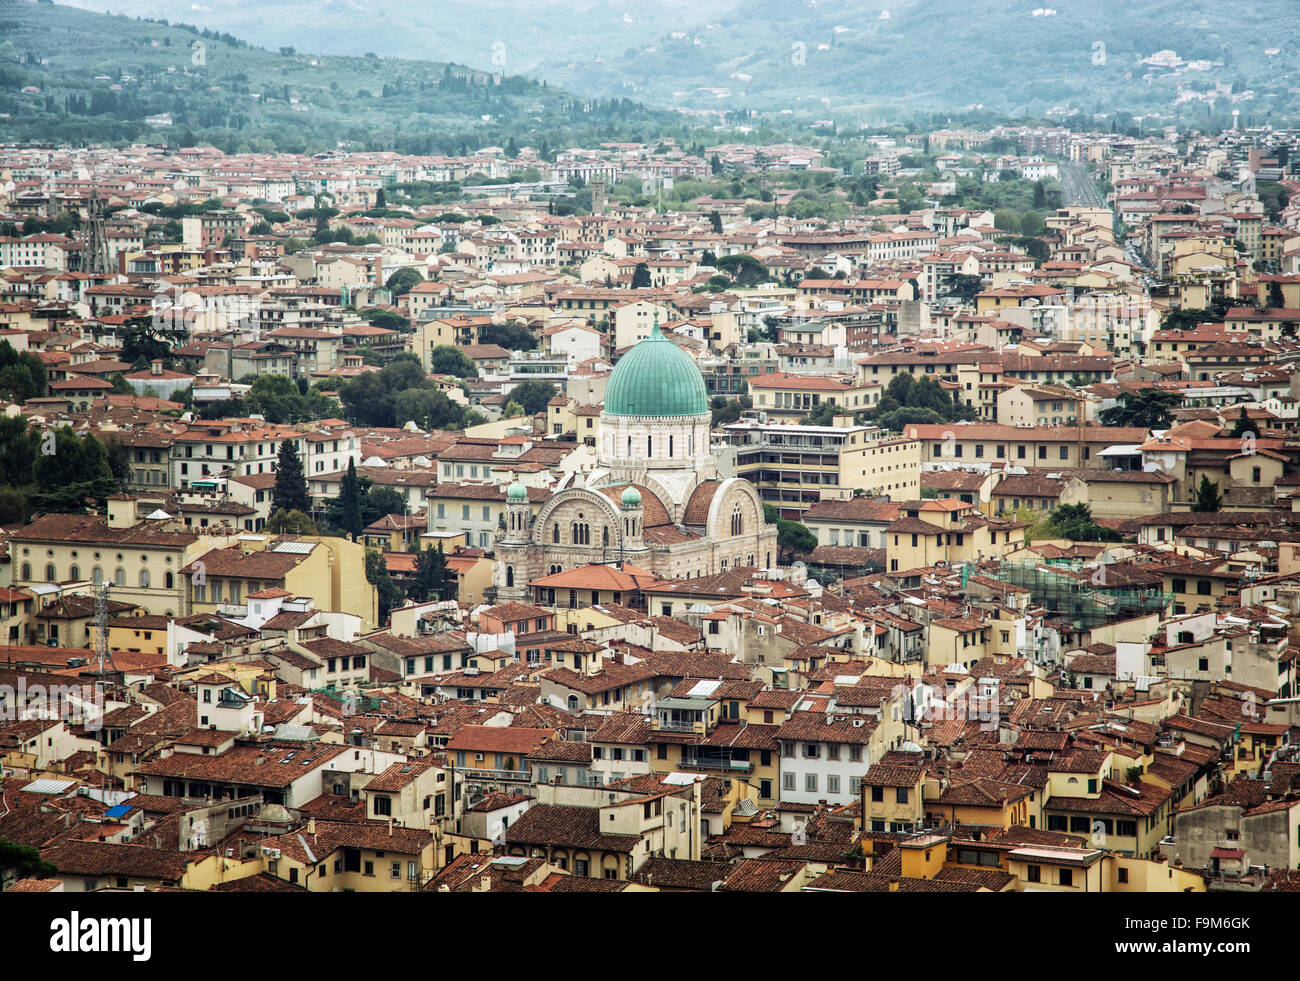 Great synagogue of Florence, Tuscany, Italy. Cultural heritage. Urban scene. Stock Photo